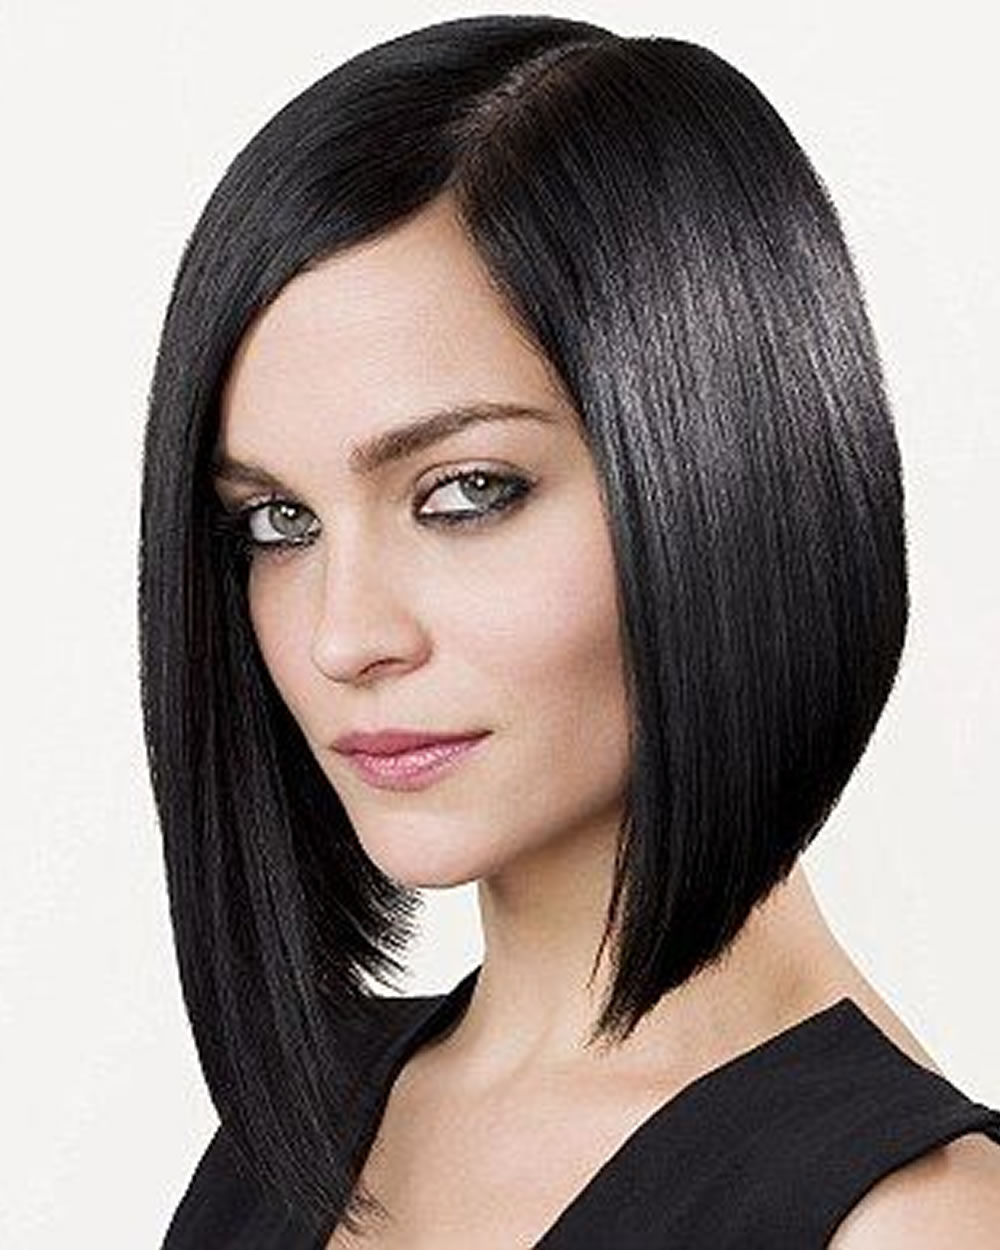 Asymmetrical long bob hairstyles 2019 are at the forefront ...